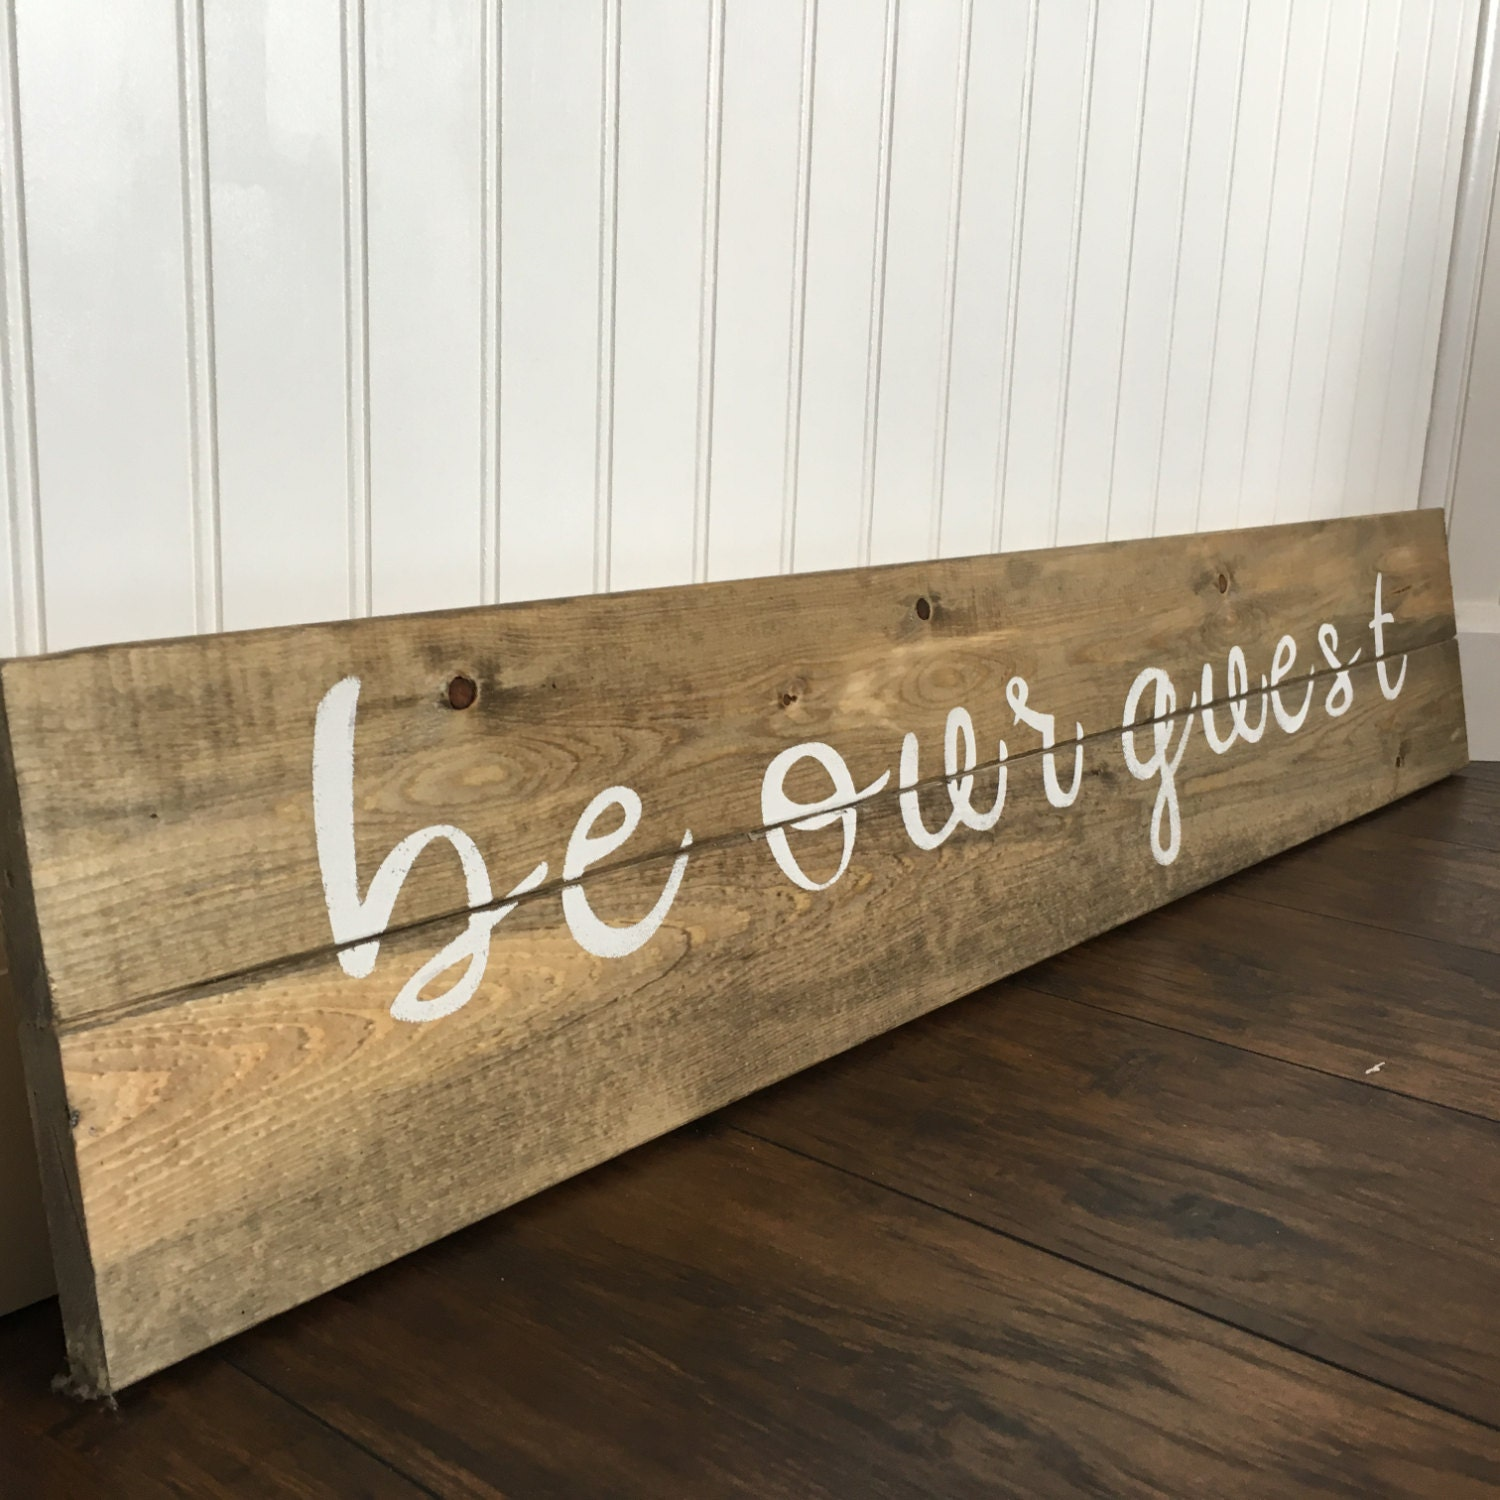 Be Our Guest Sign Guest Bedroom Rustic Wall Decor Rustic. Arizona Cheap Car Insurance Sentient Jet Llc. Transcription Service Rates Clue Report Auto. Accredited Pharmacy Technician Programs. How To Do A Market Research Report. The Orlando Family Firm Refinance Equity Loan. Eyebuydirect Free Shipping Trimble R8 Manual. Clinical Psychology Salaries. How To Define Your Target Market